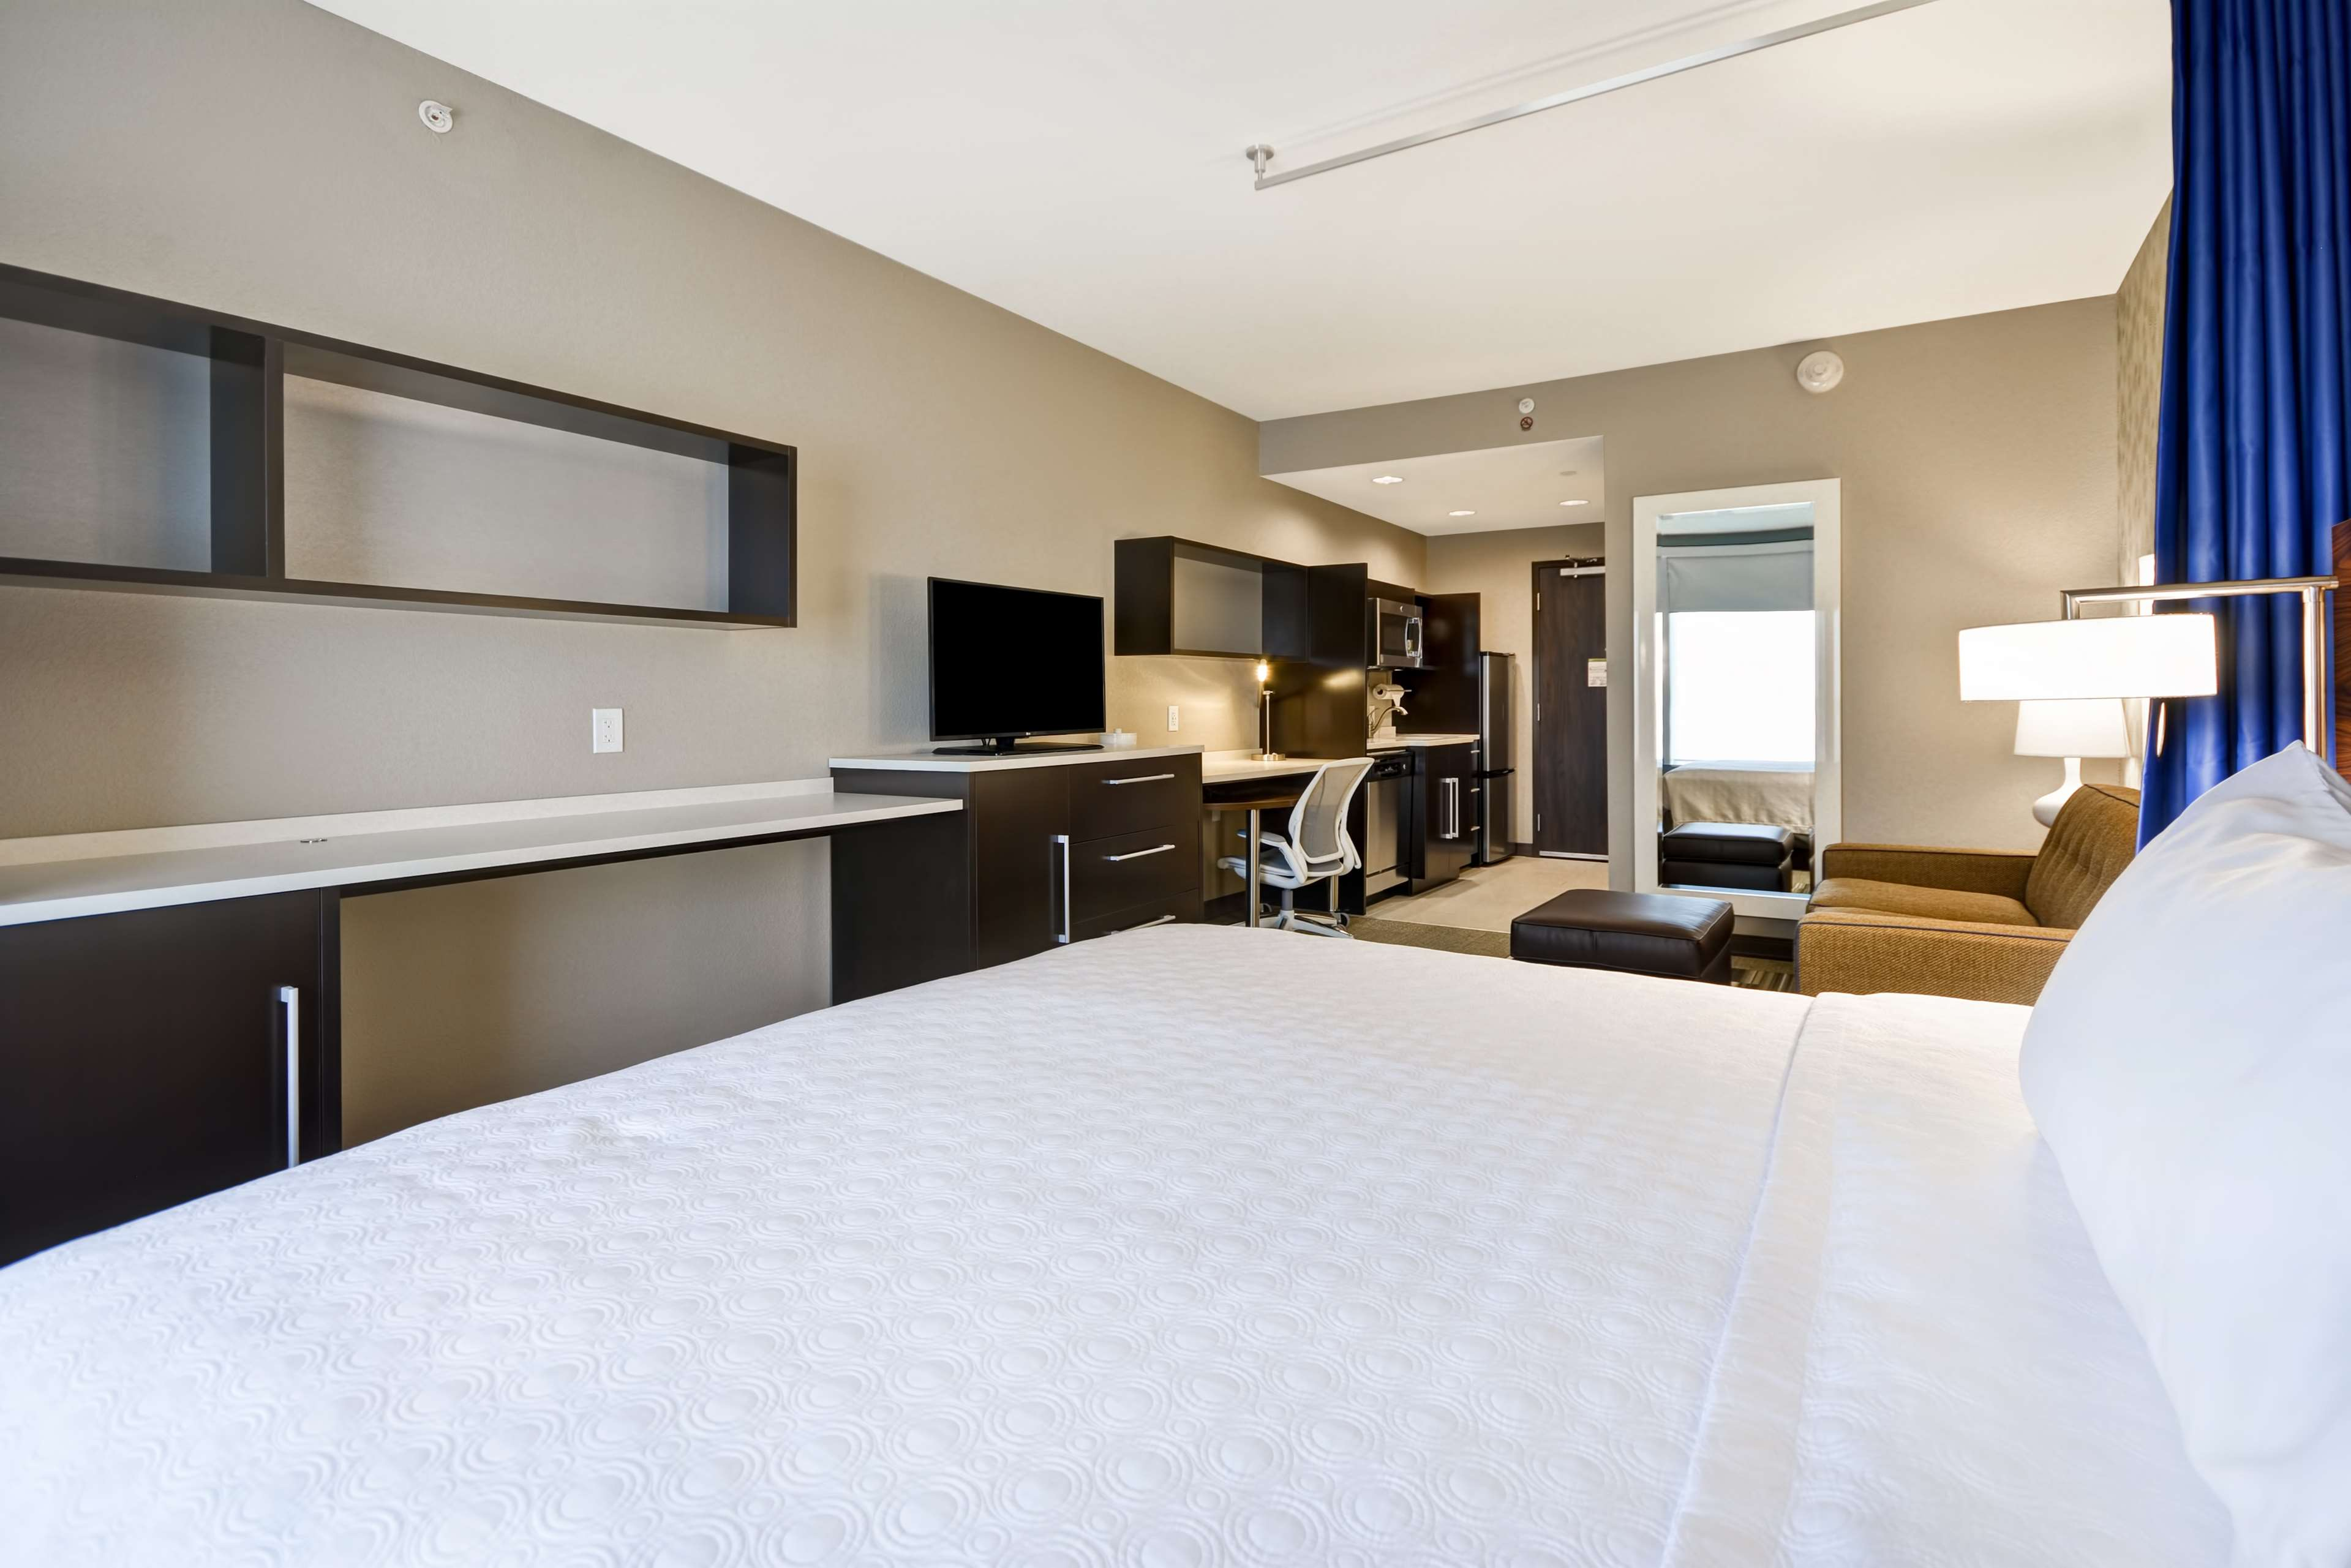 Home2 Suites By Hilton Stow Stow Ohio Oh